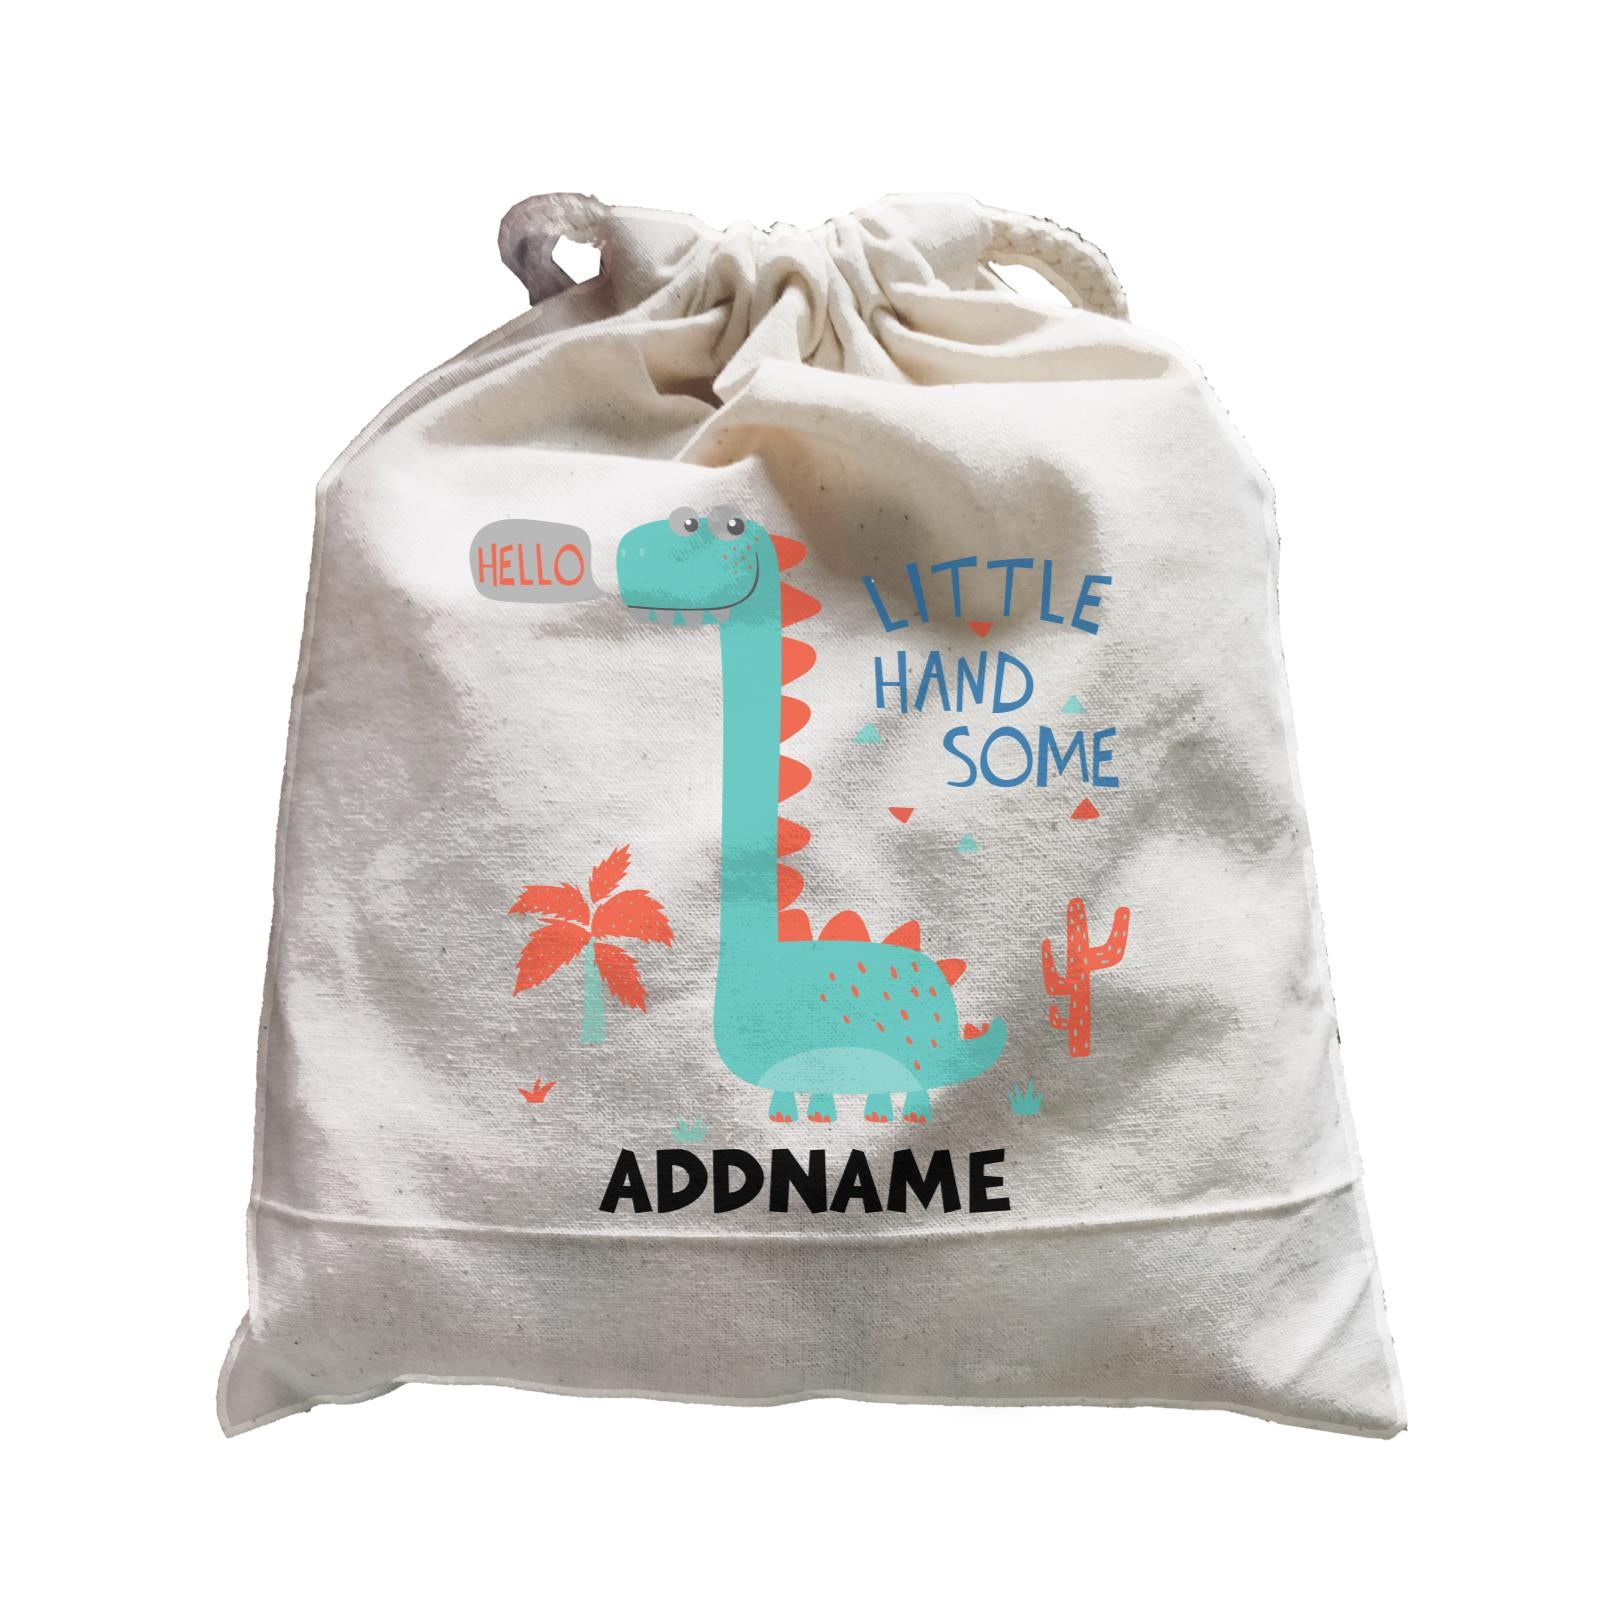 Hello Little Handsome Dinosaur Addname Bag Satchel